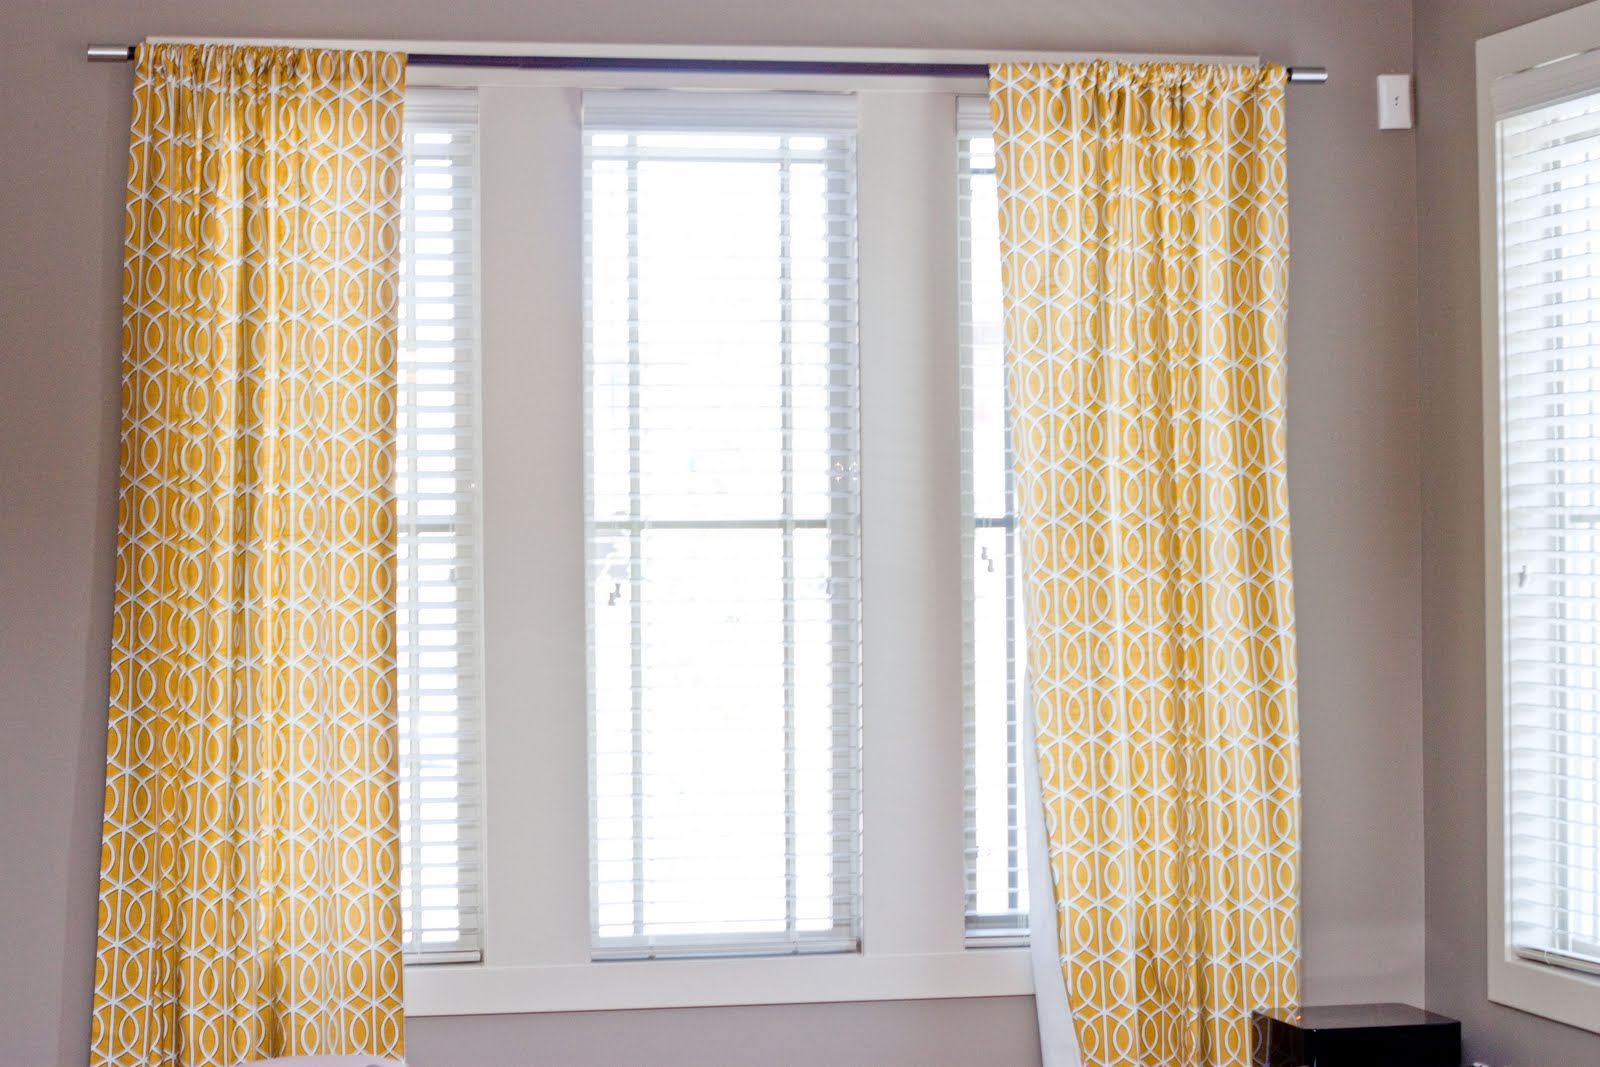 hang curtains step visual guide must have mom